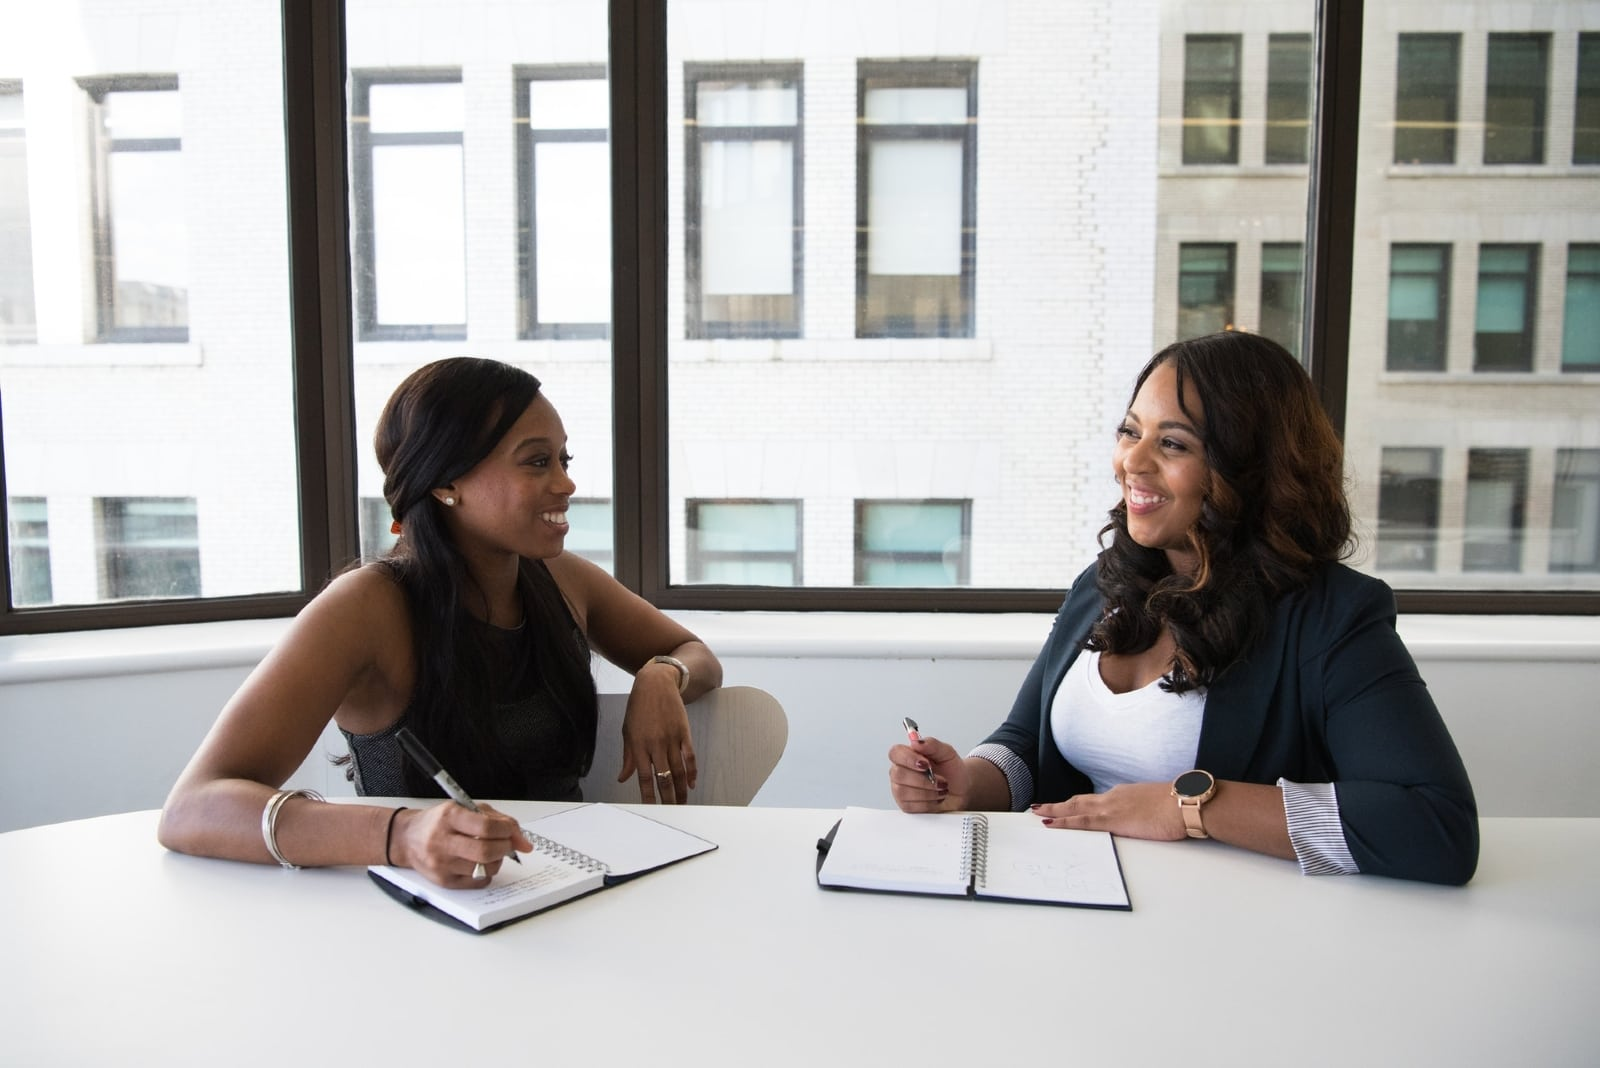 two women talking while sitting at table in office